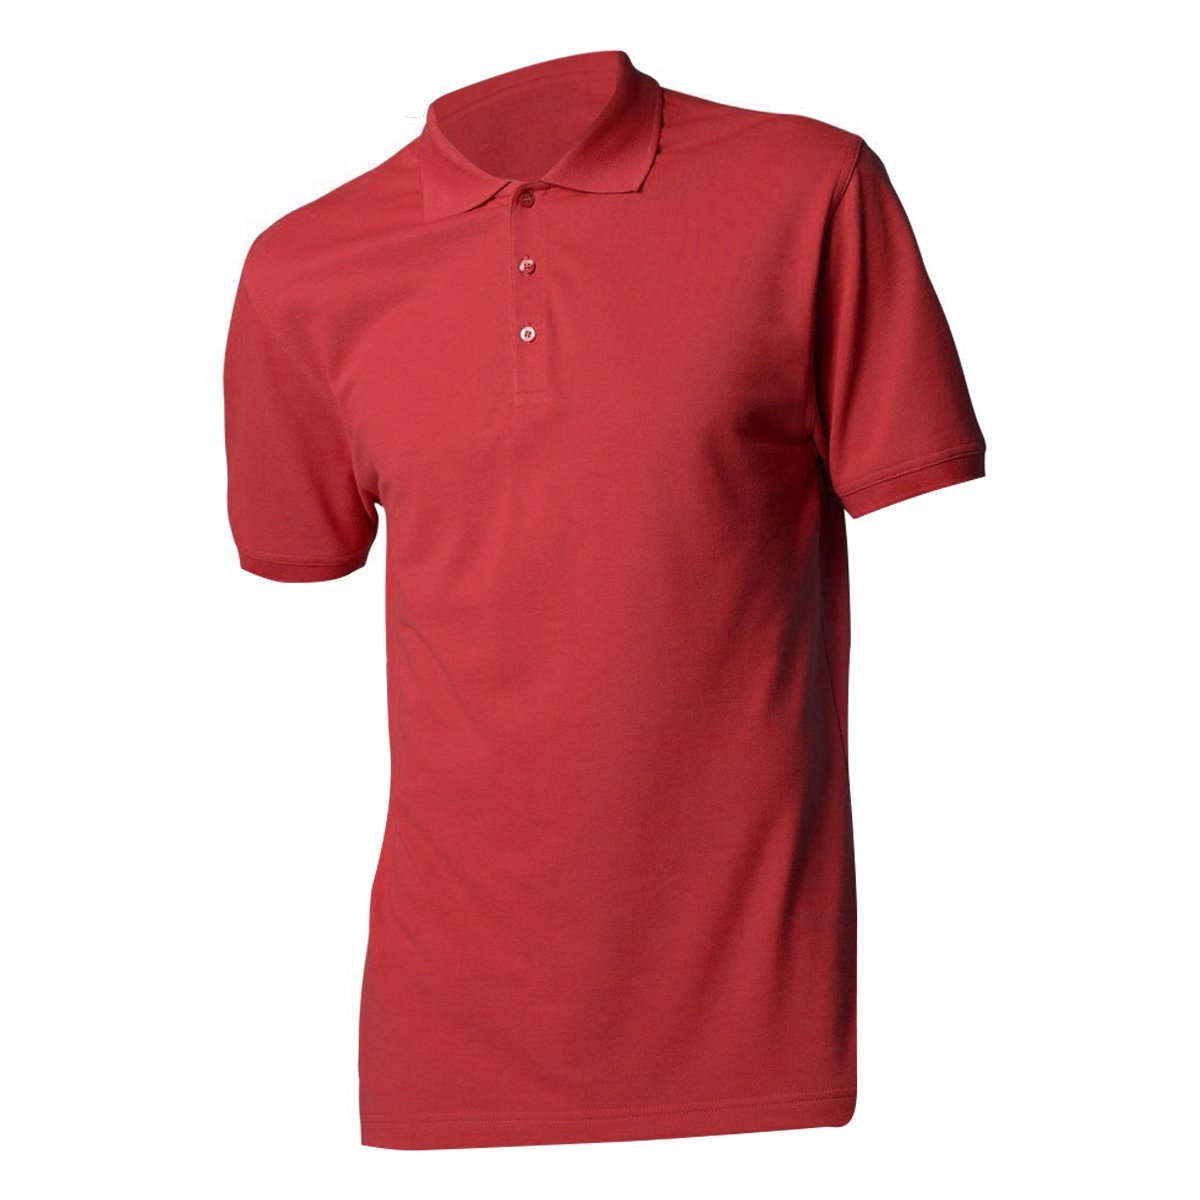 Kustom Kit Mens Slim Fit Short Sleeve Polo Shirt (M) (Red) UTBC3236_25